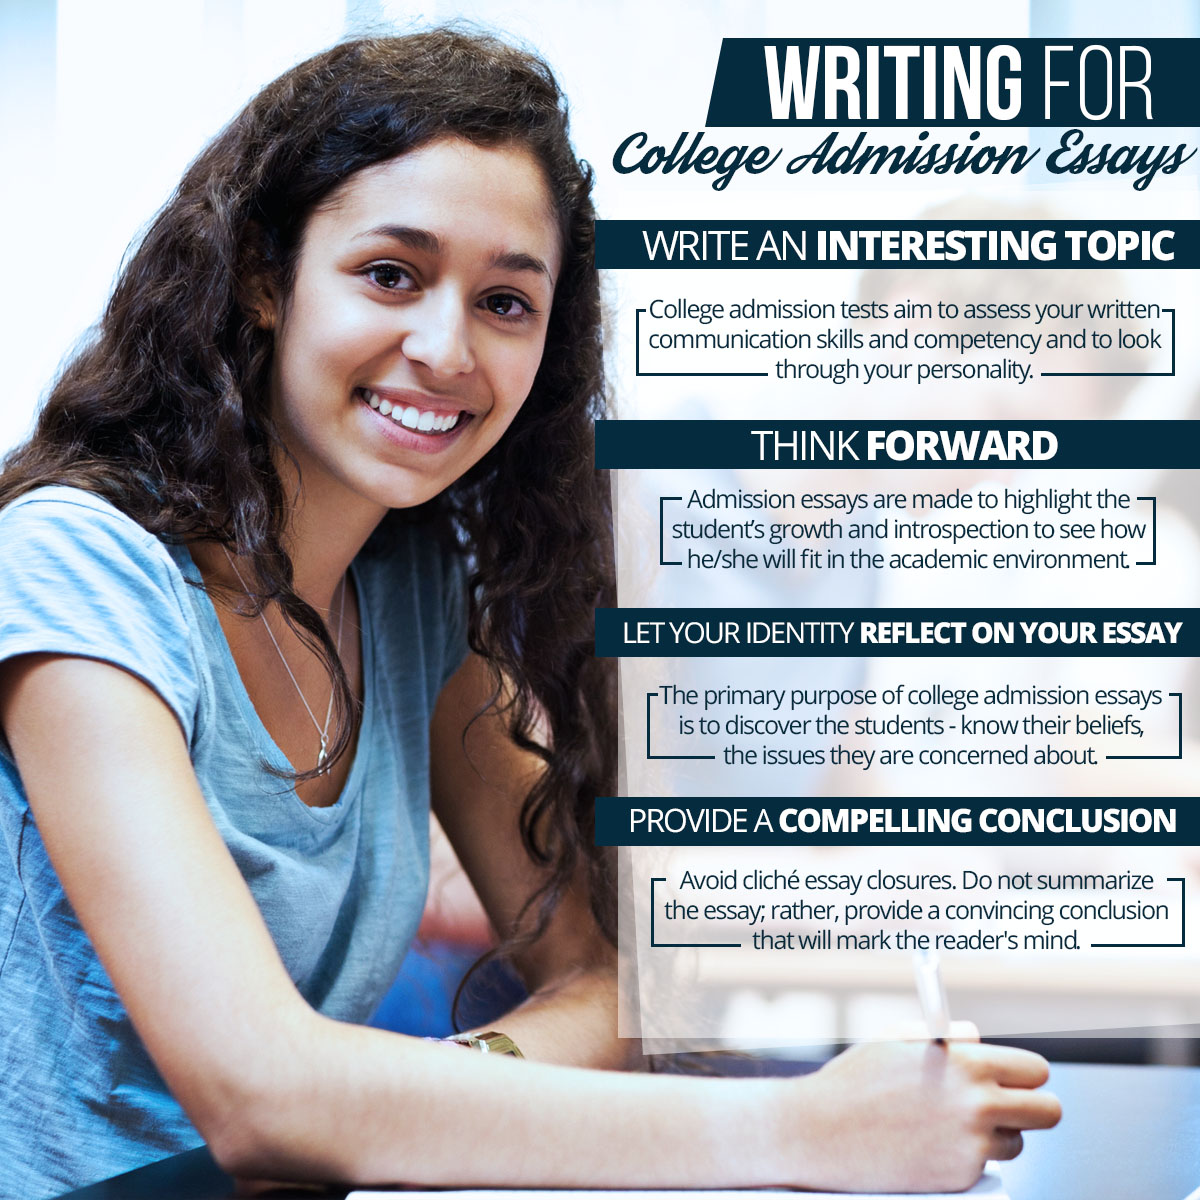 College application essay help online review